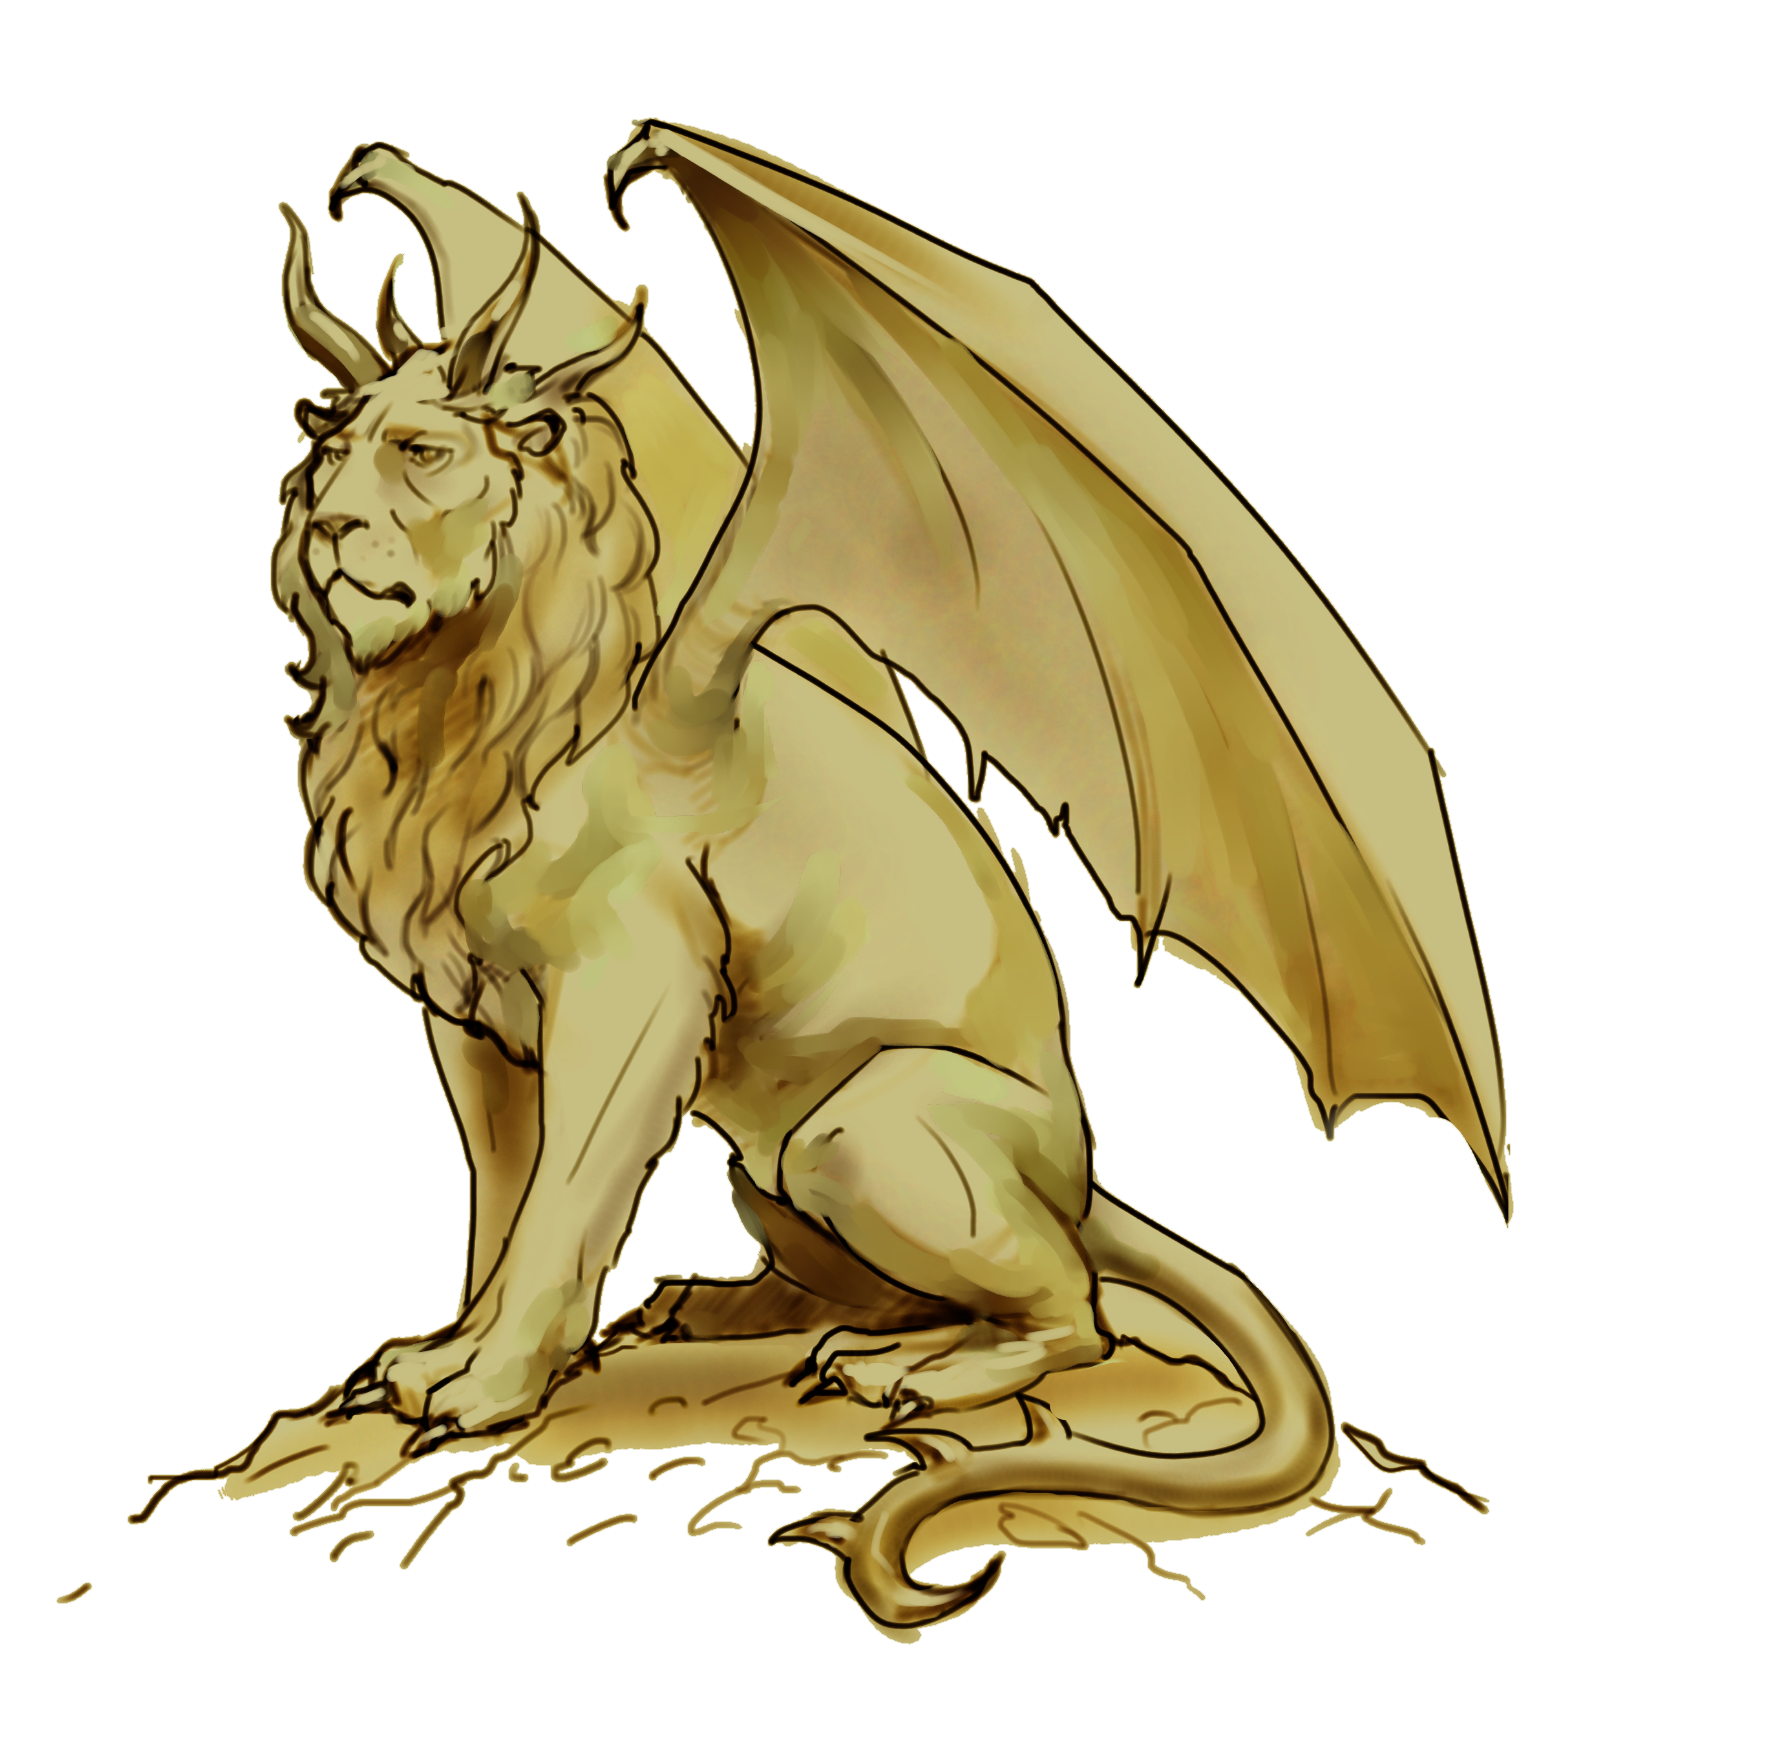 Shades of vengeance. Manticore drawing svg freeuse